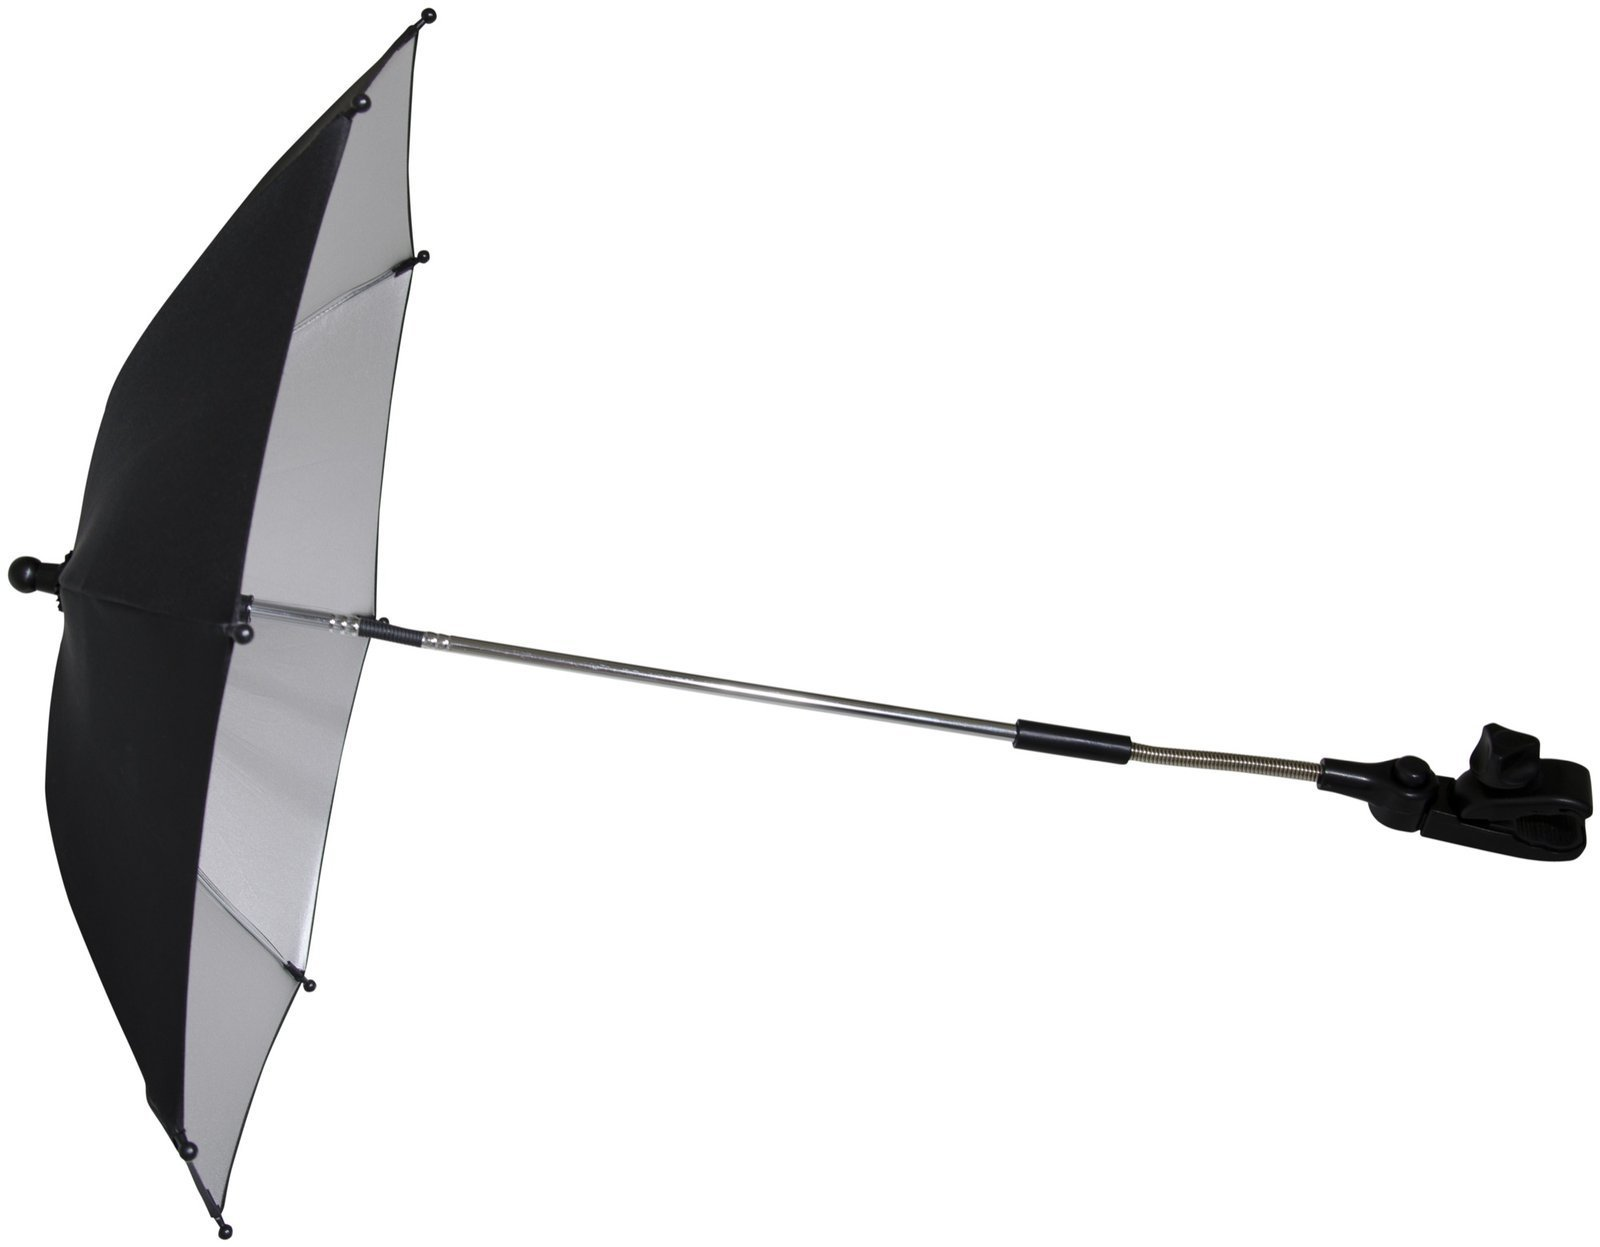 Mountain Buggy Parasol Umbrella for Strollers, Car Seats, High Chairs and More, Black